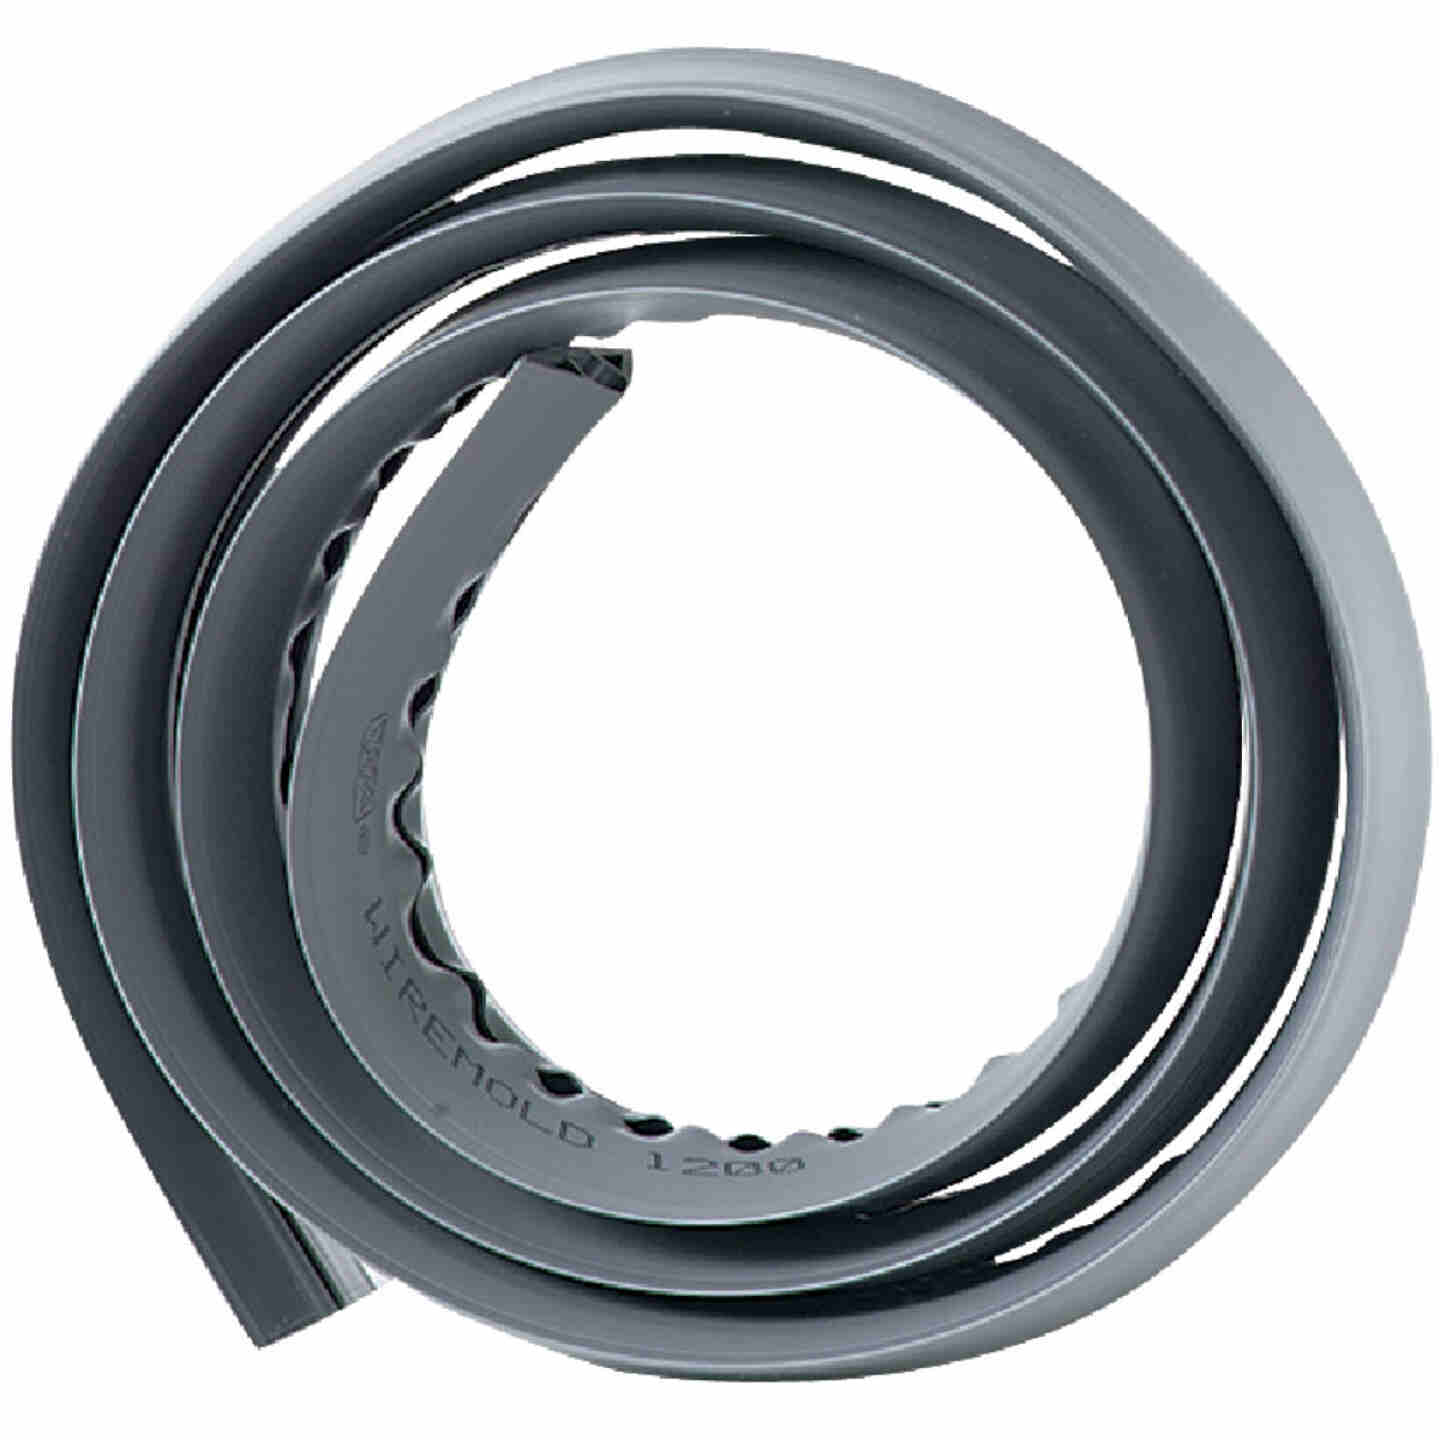 Wiremold Corduct Gray 5 Ft. x 5/16 In. Wire Protector Image 3